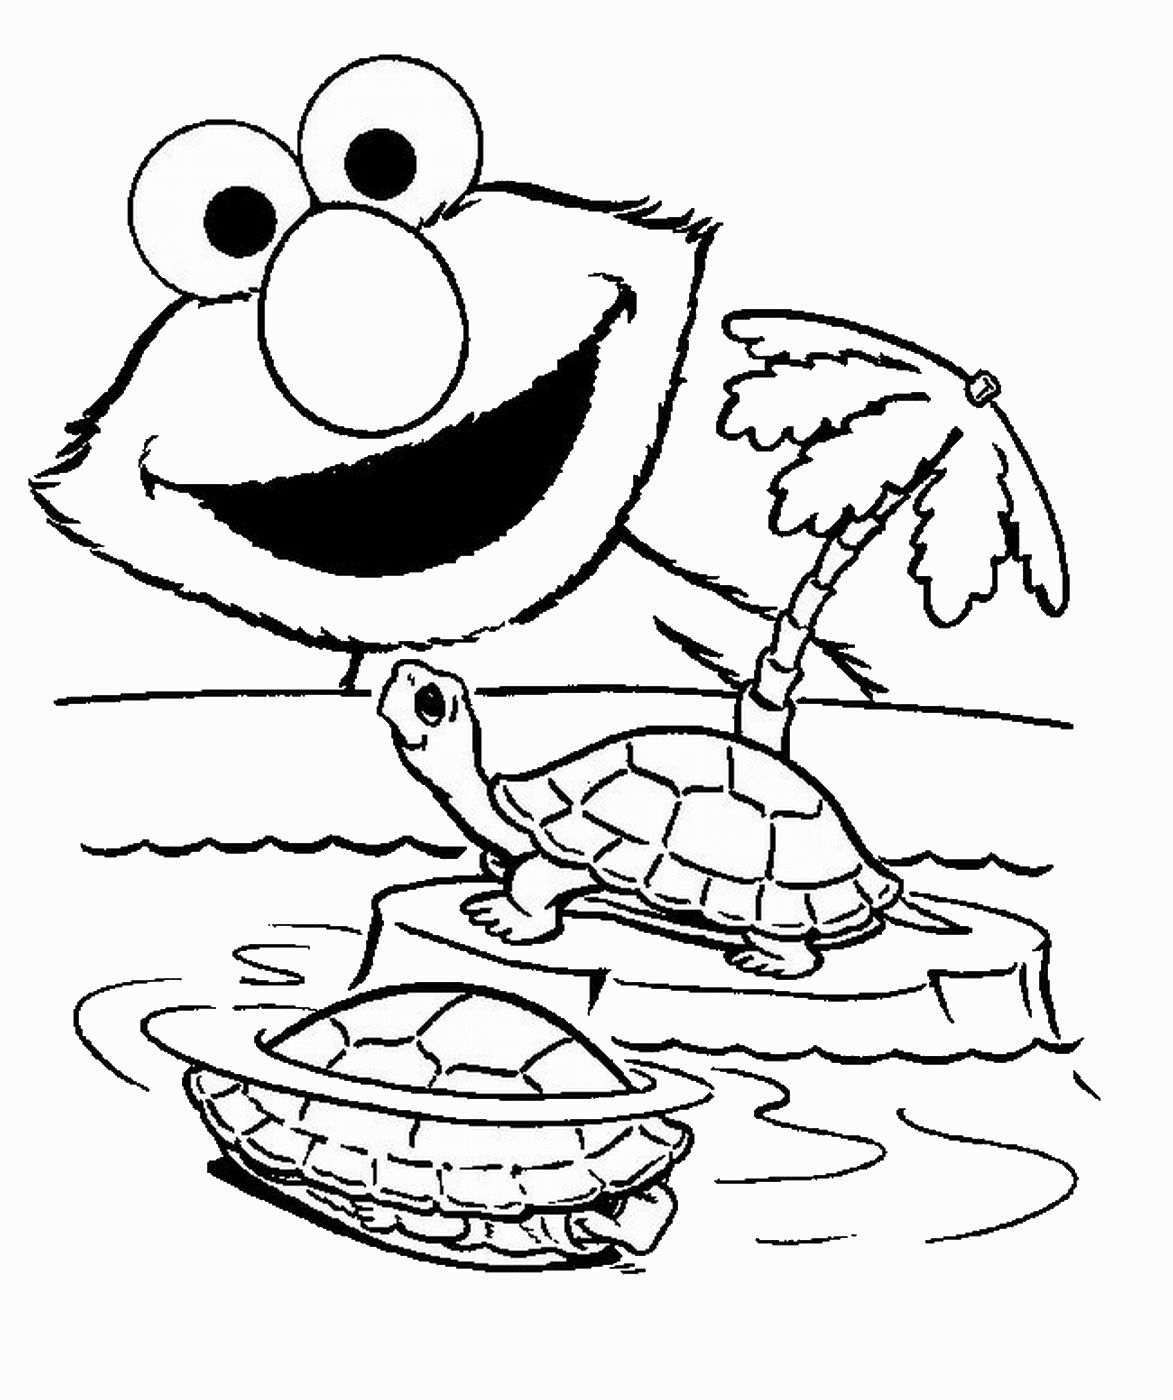 Exciting Elmo Coloring Pages As Well Print Pictures To Color At